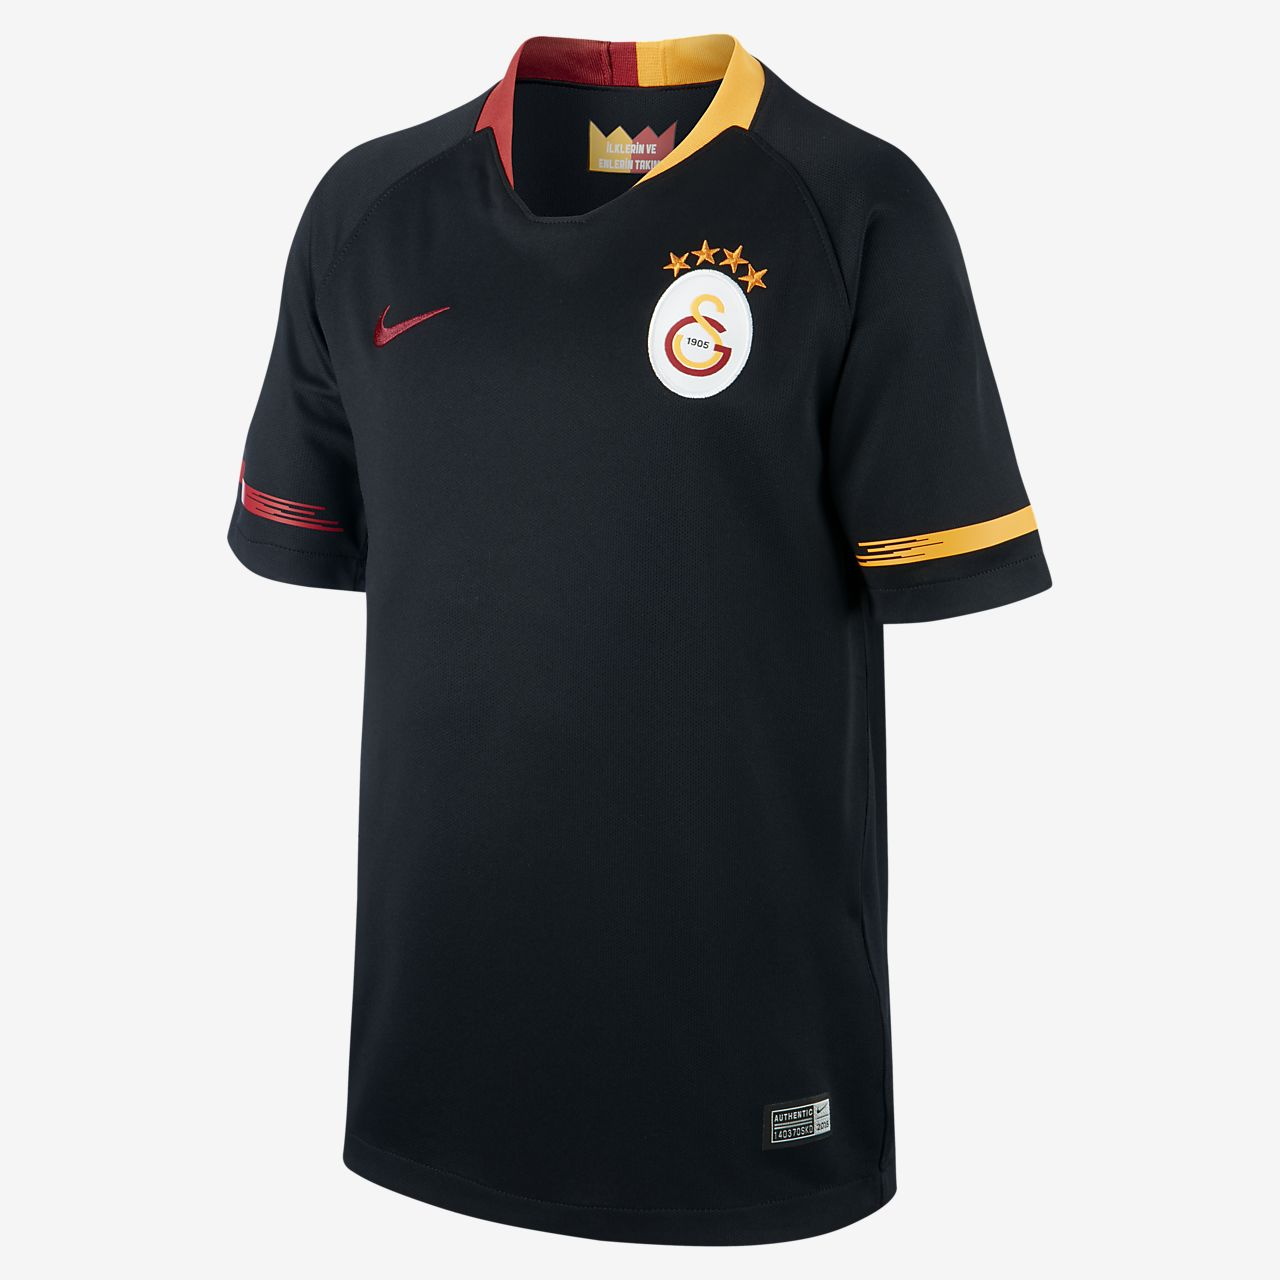 2018/19 Galatasaray S.K. Stadium Away Older Kids' Football Shirt